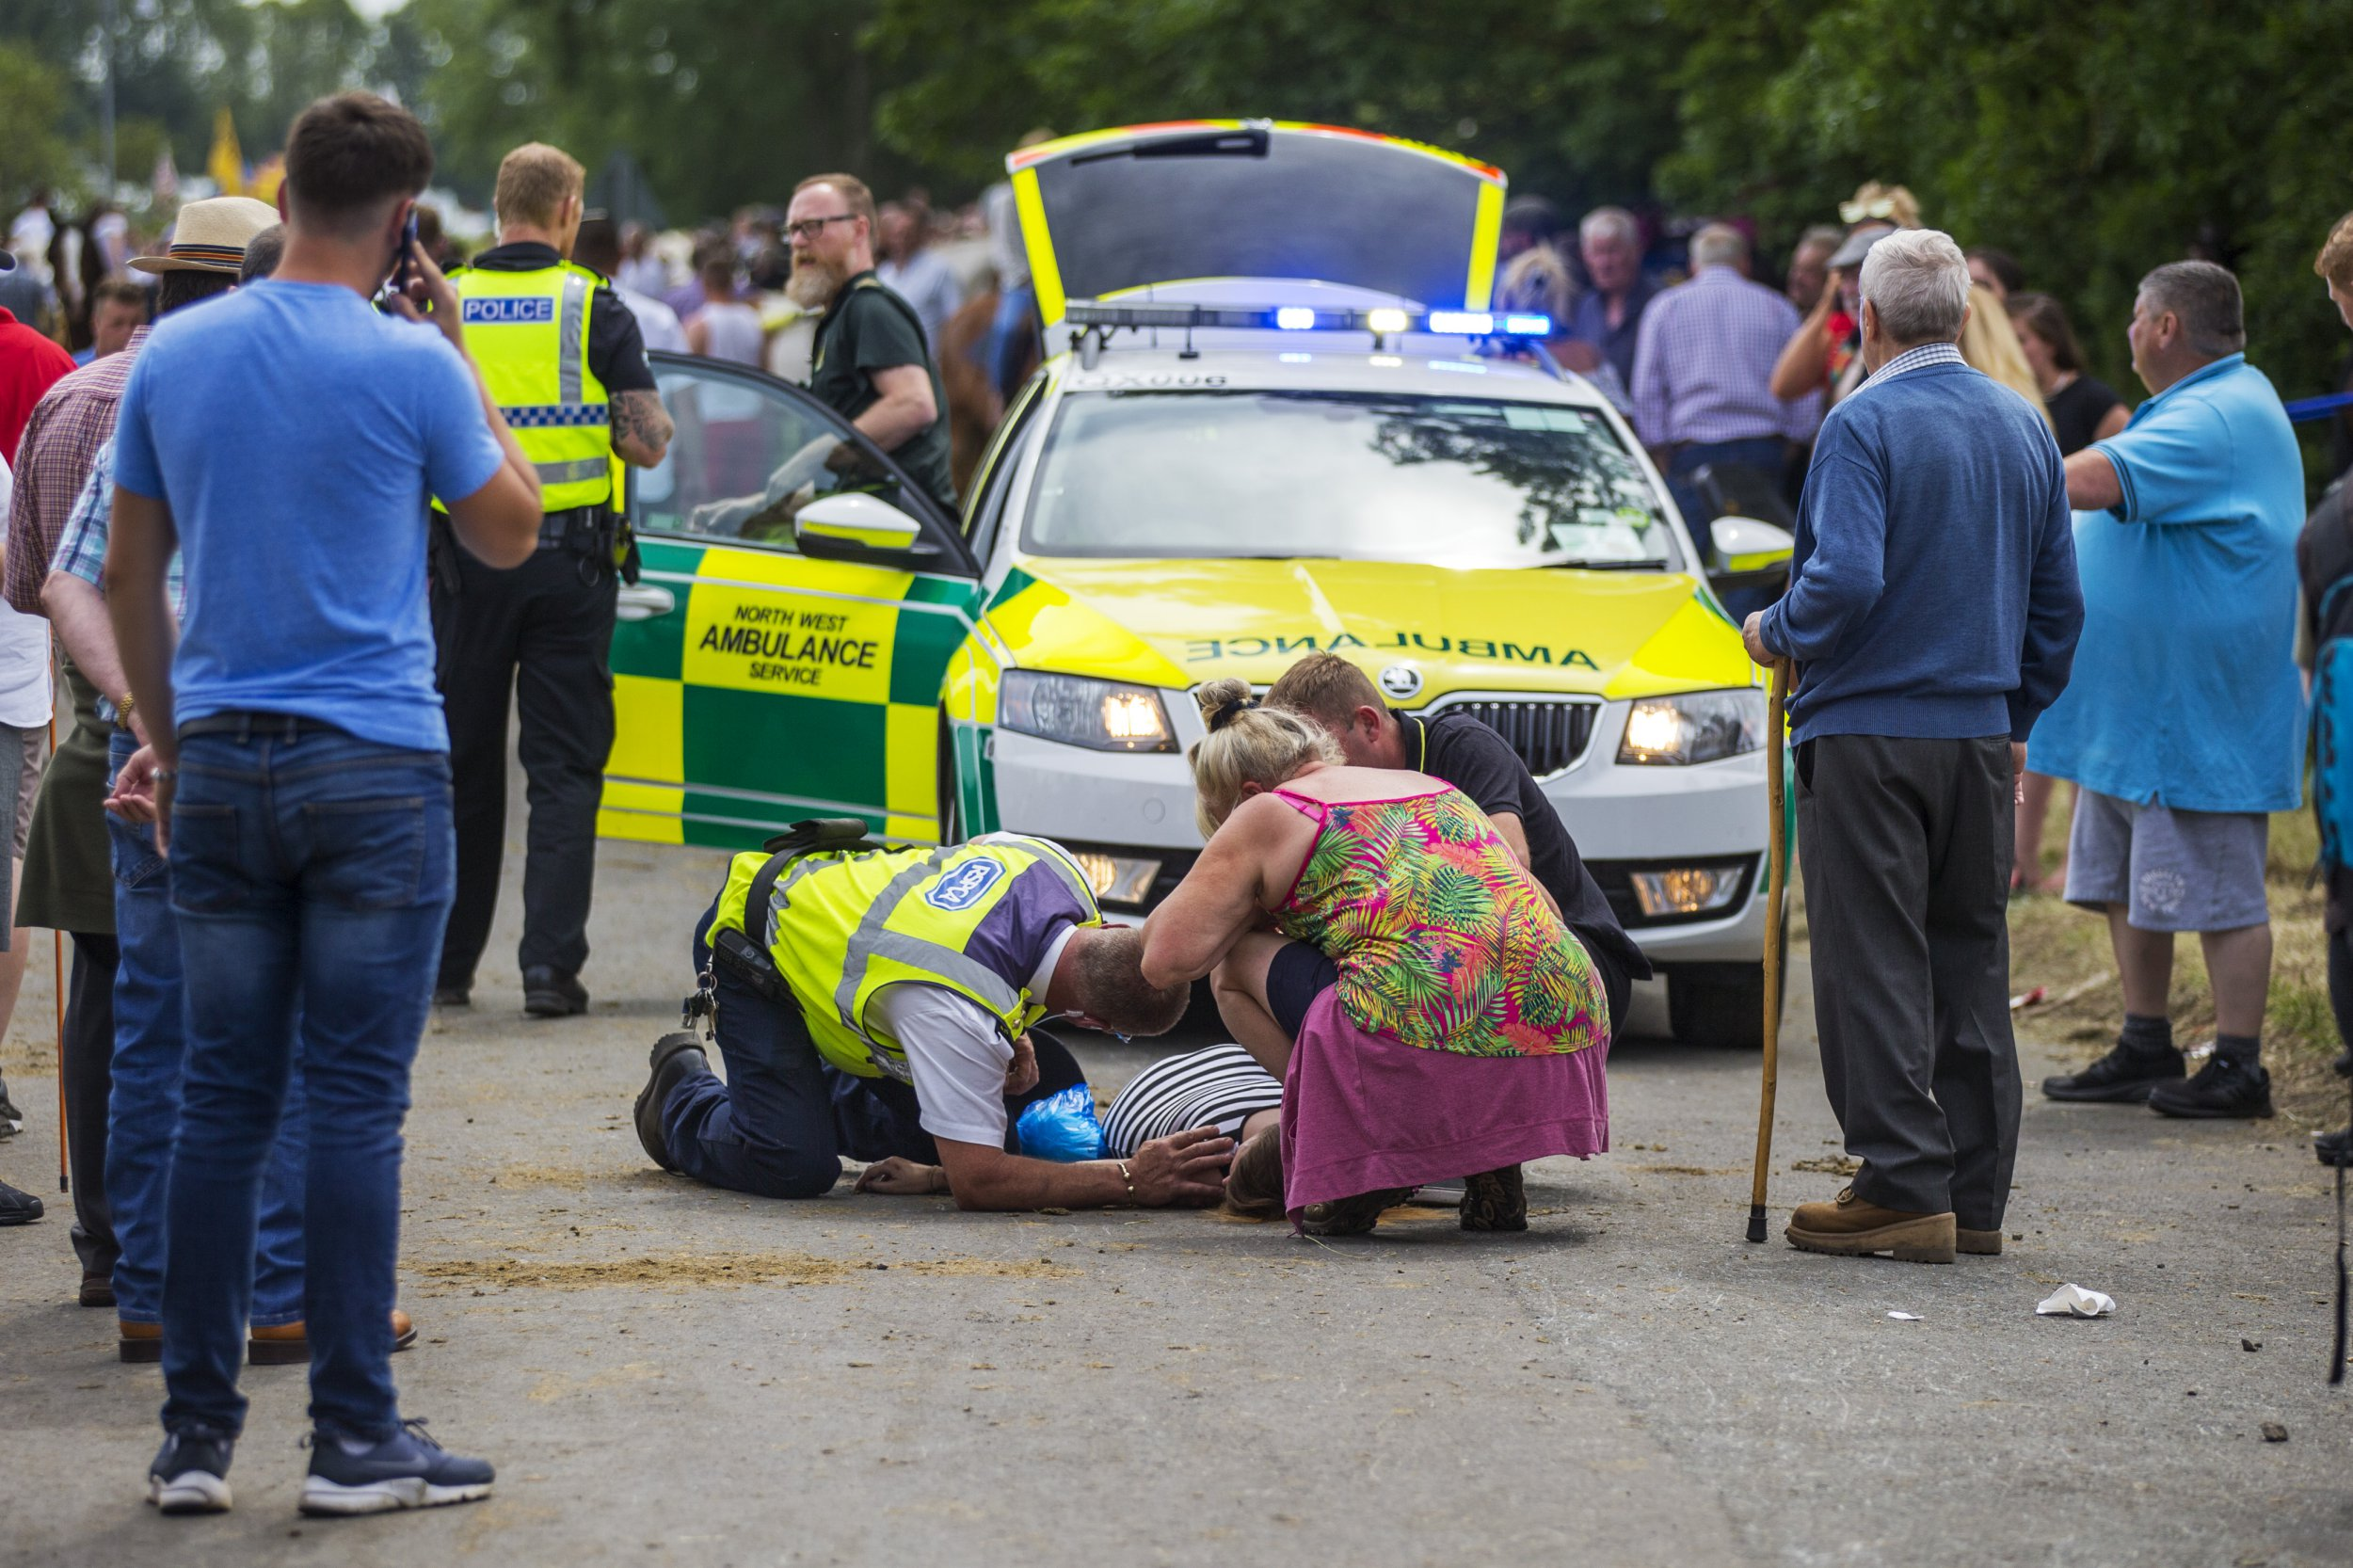 ? London News Pictures Ltd. 08/06/2018 Appleby UK. A young woman lying unconscious with a head injury after being hit by travellers racing a horse & cart on a road in Appleby. The Appleby Horse fair is taking place this weekend & is billed as the biggest Traveller & Gypsy fair in Europe attracting over 10,000 travellers & 30,000 visitors to the town of Appleby in Cumbria. Photo Credit: Andrew McCaren/LNP